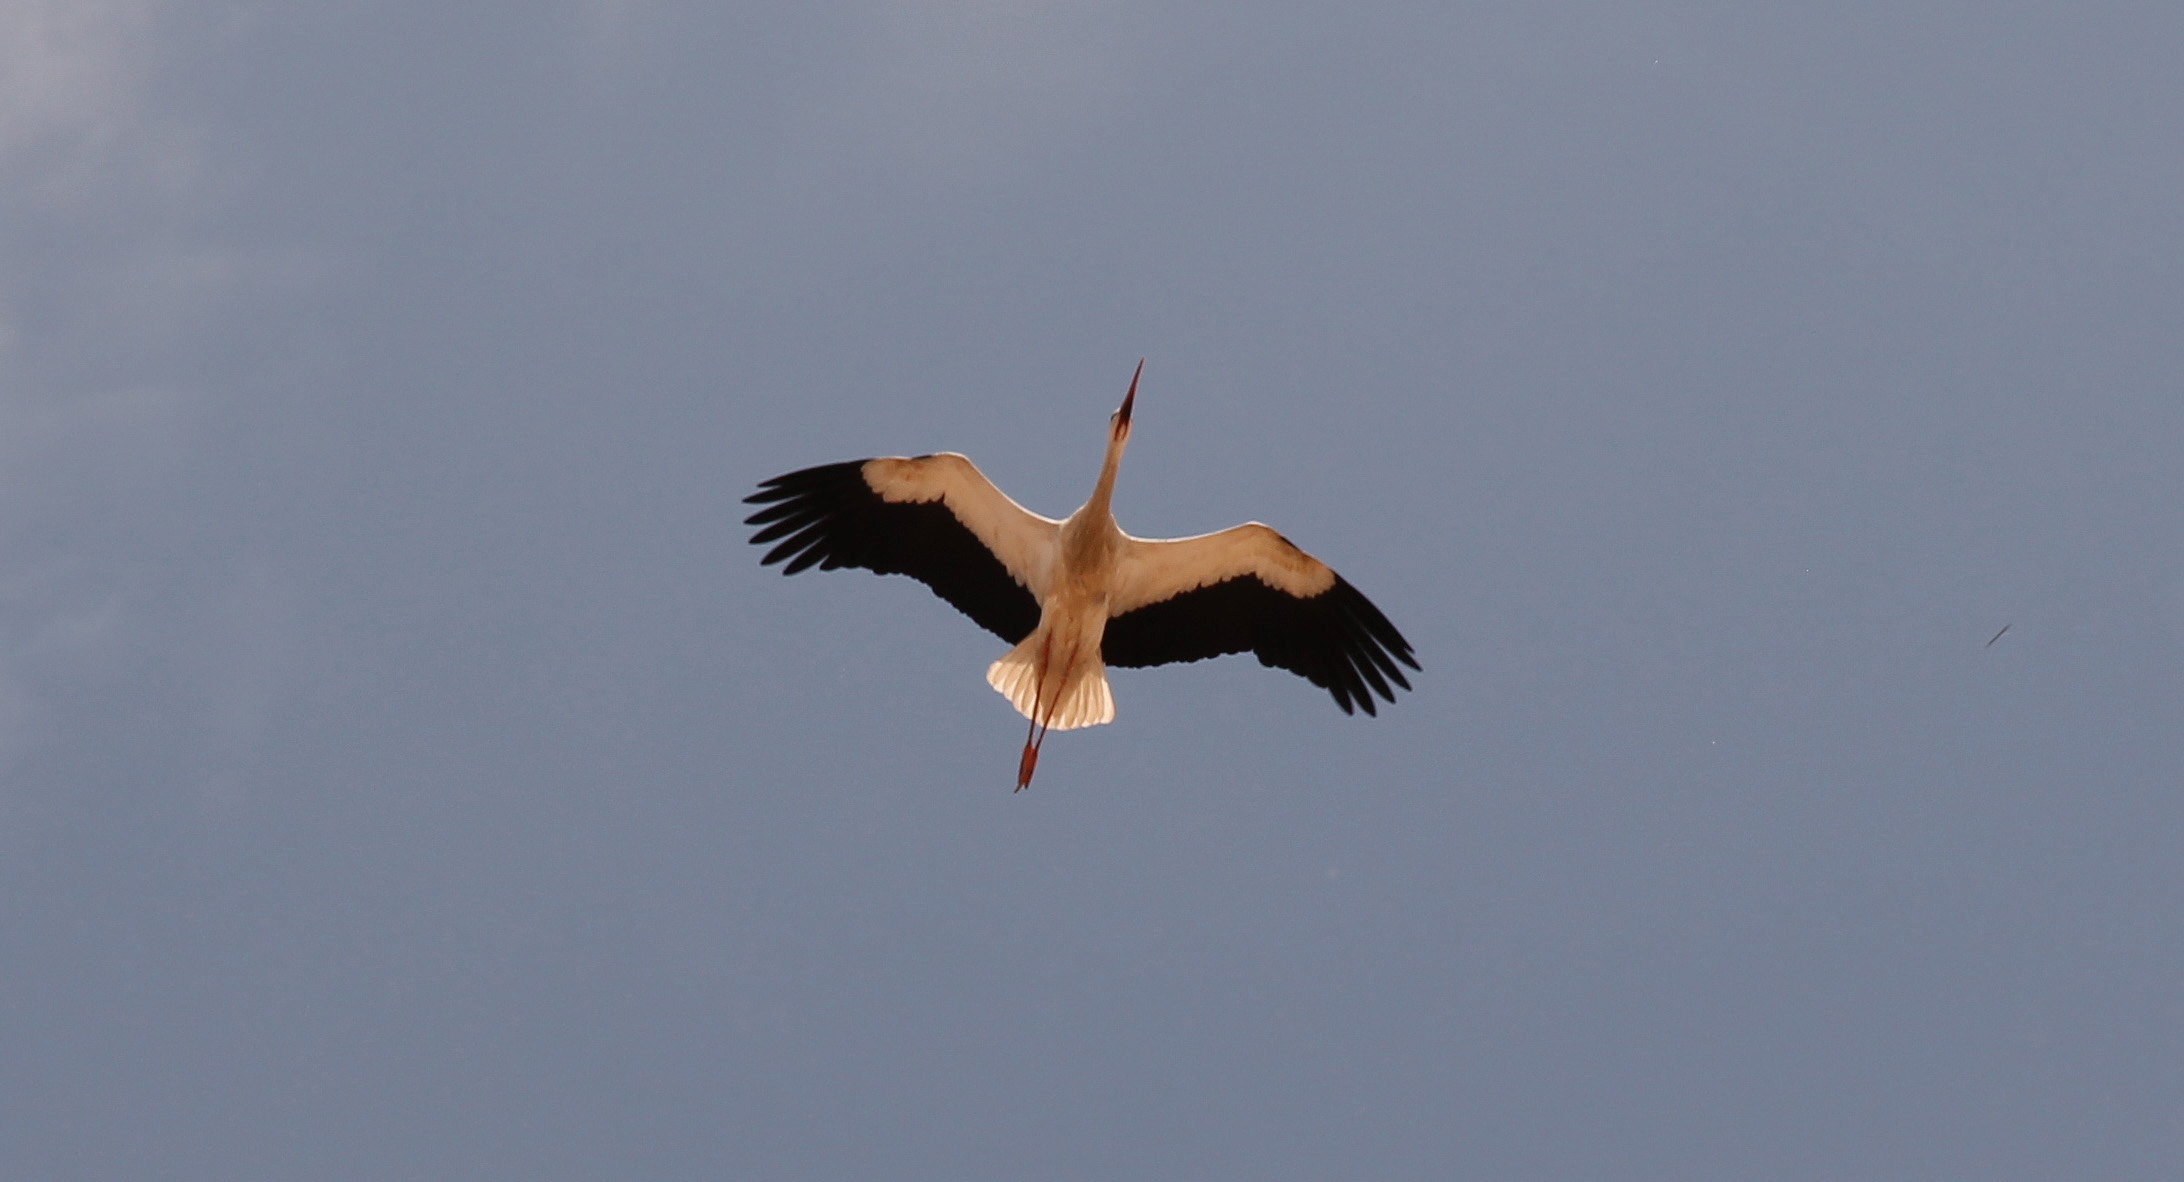 A stork flying over. They are everywhere in Marrakech!